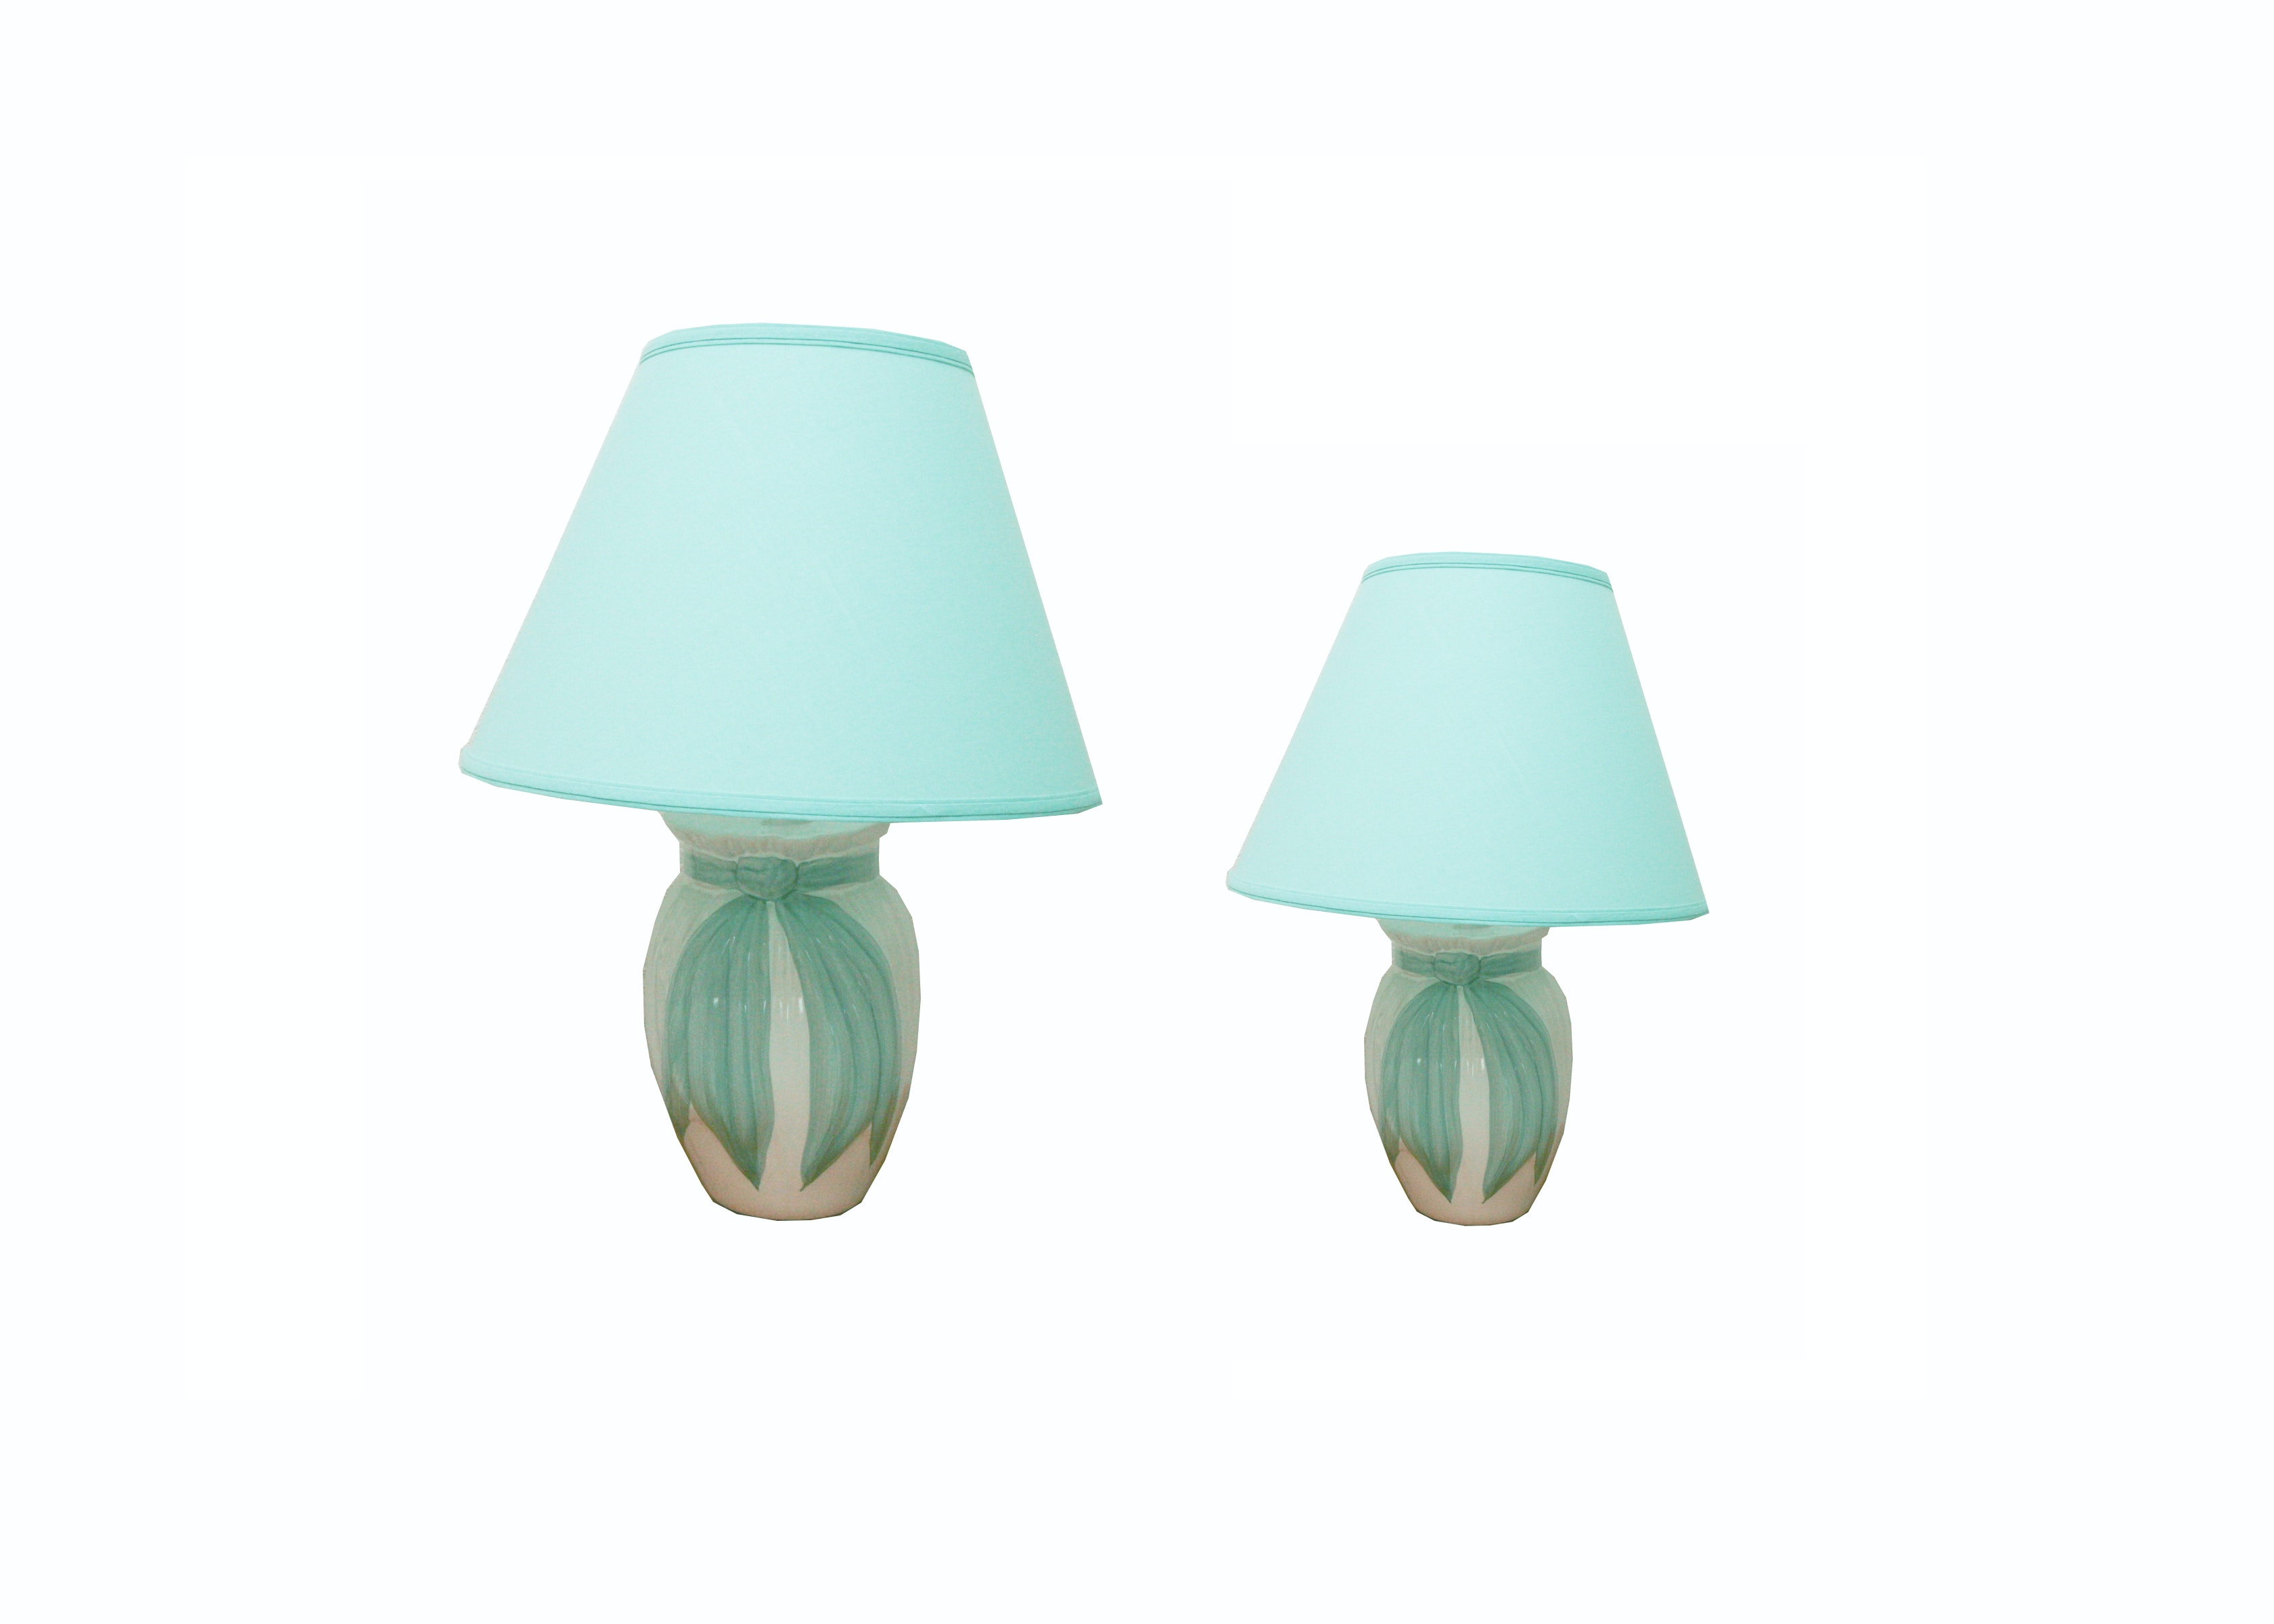 Matching Ceramic Table and Accent Lamps